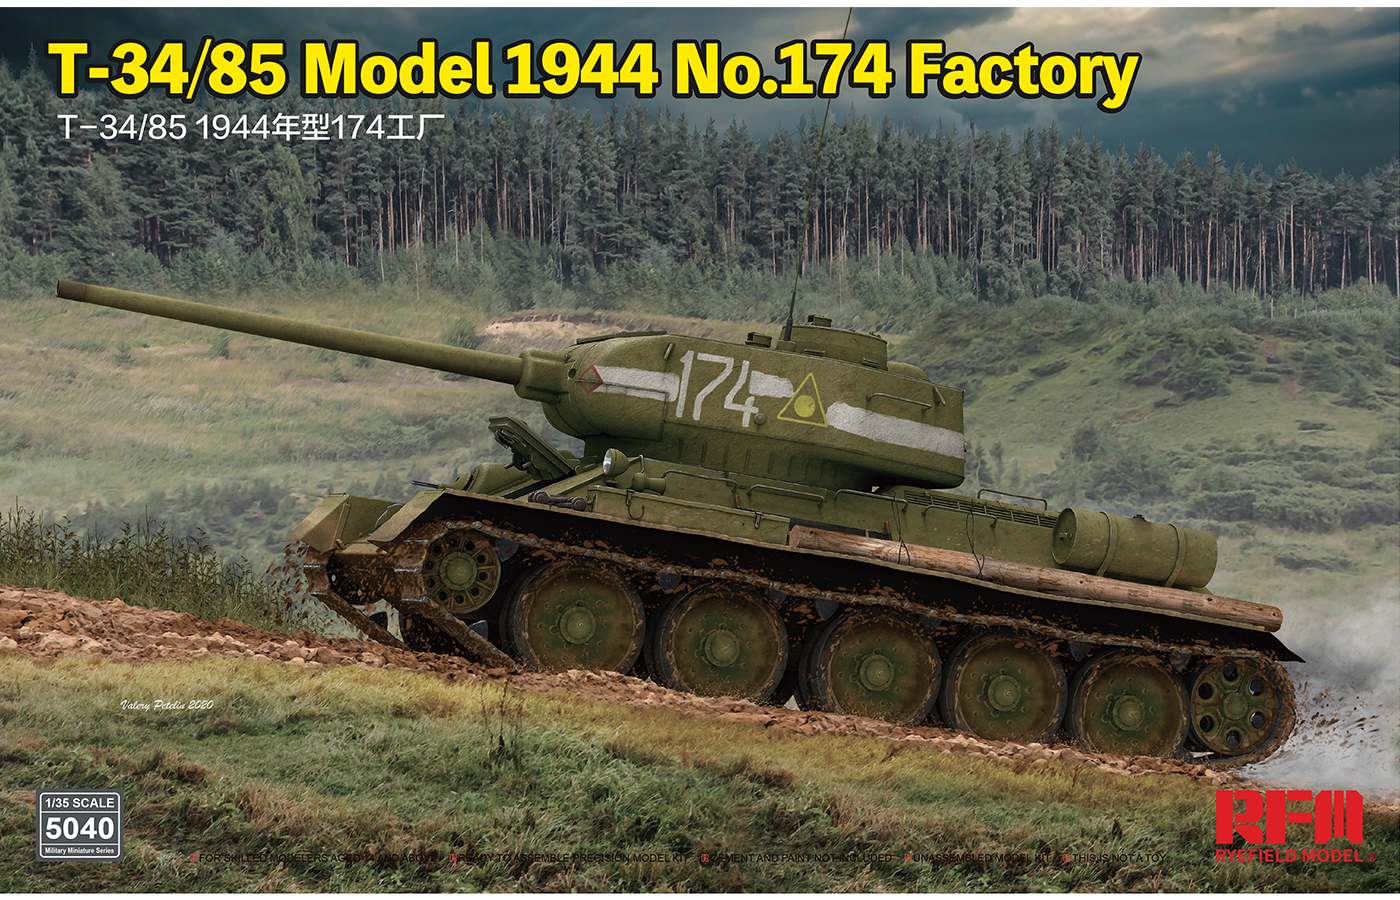 RM-5040 T-34/85 Model 1944 No.174 Factory